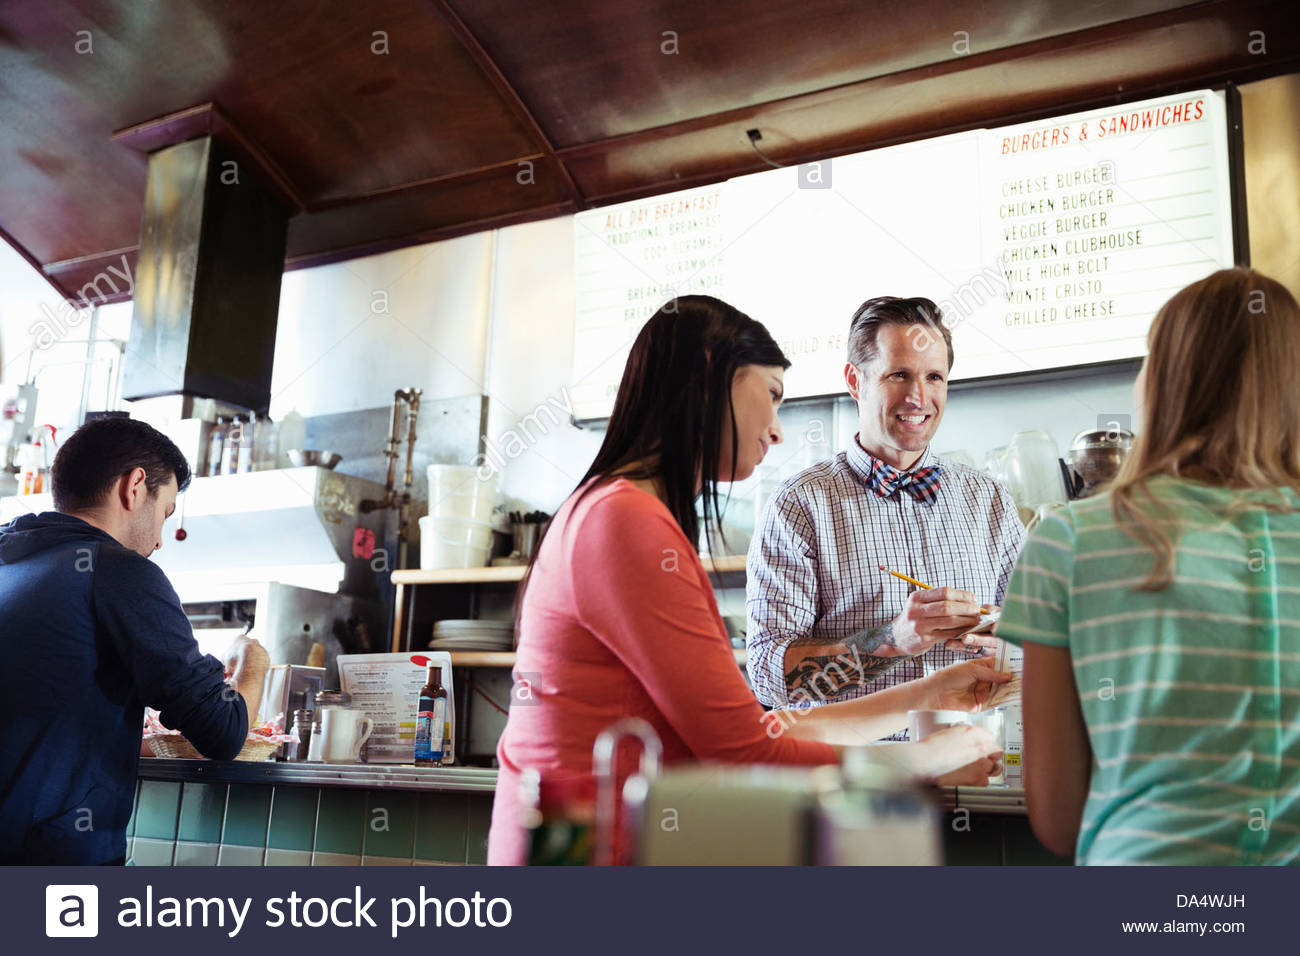 Diner owner taking customers orders at counter - Stock Image